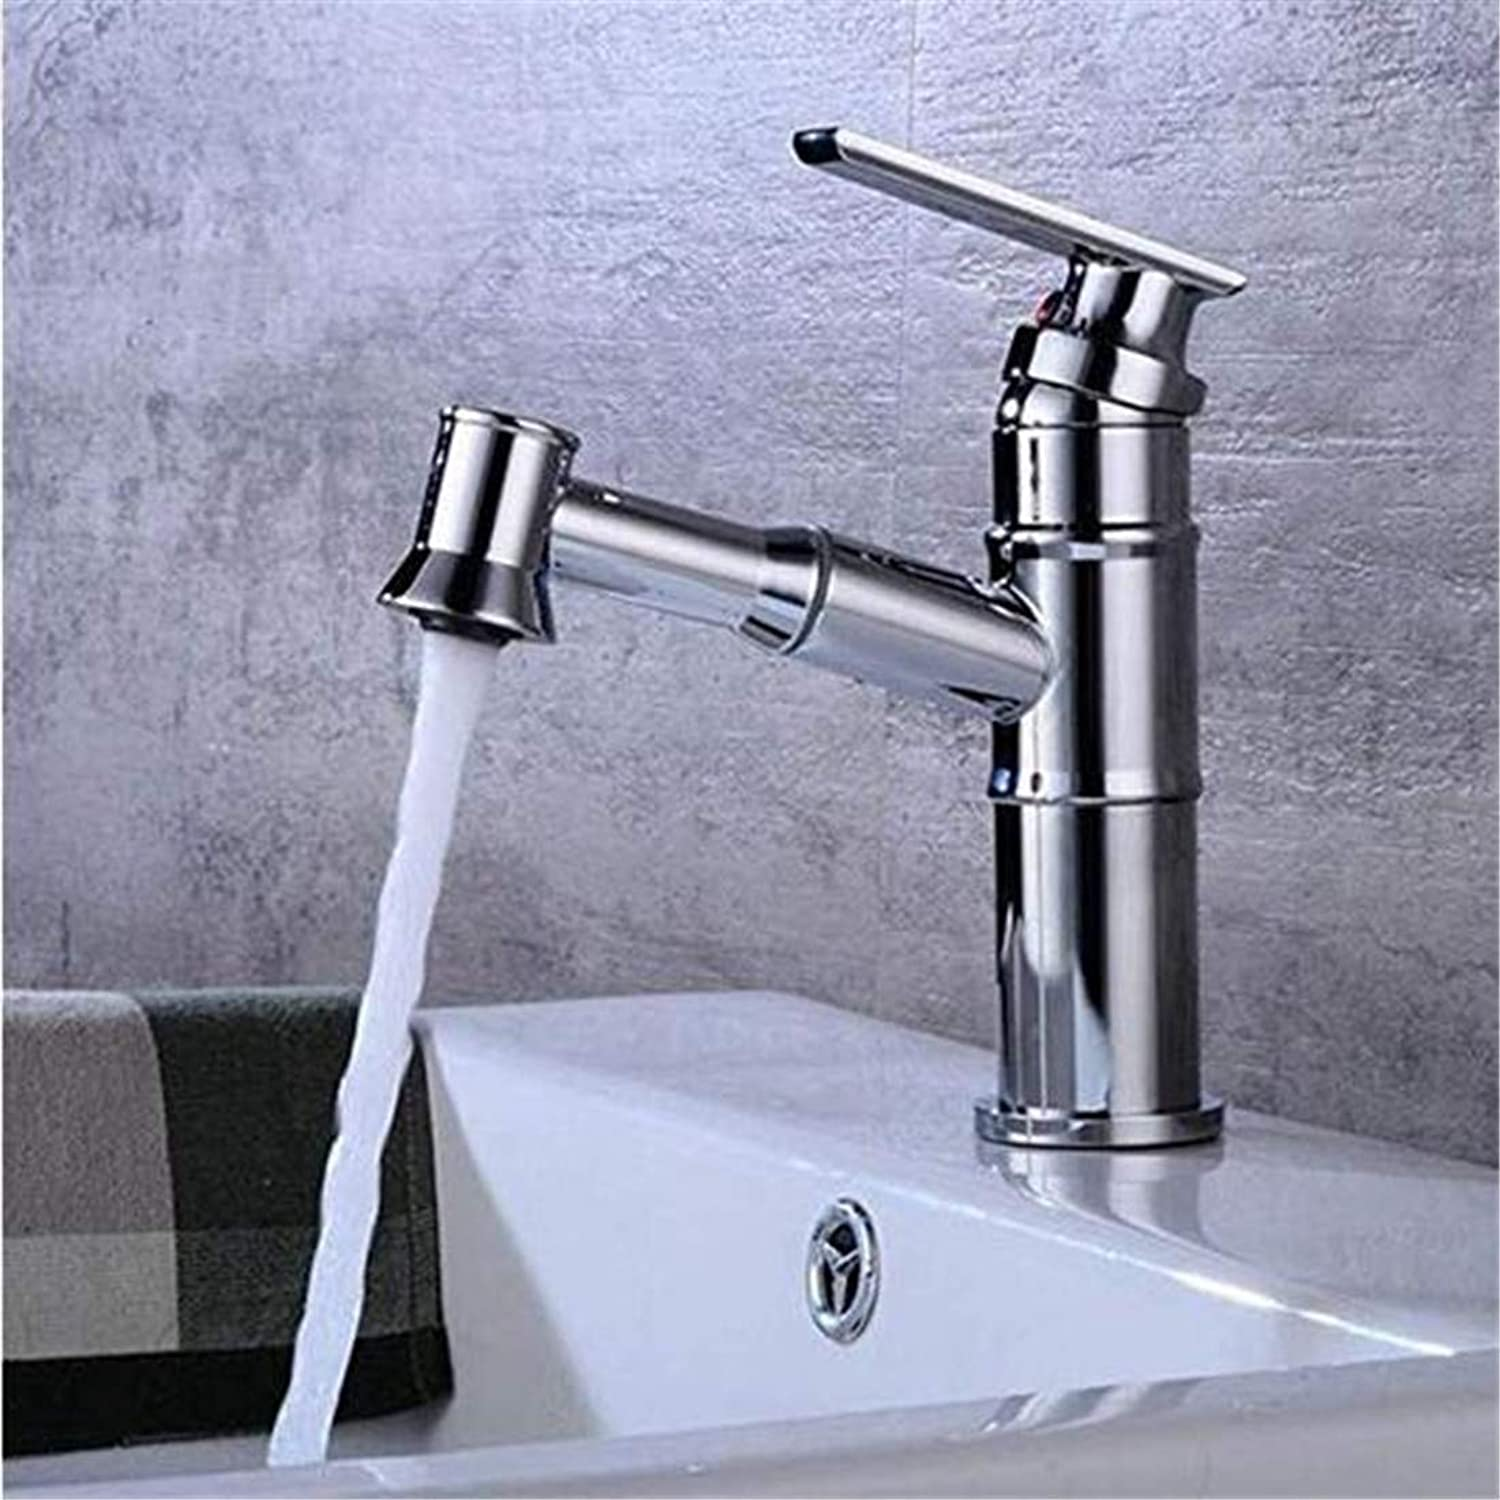 Modern Hot and Cold Vintage Platingbasin Faucet Antique Pull Type Chrome Water Tap Copper Wash Single Handle